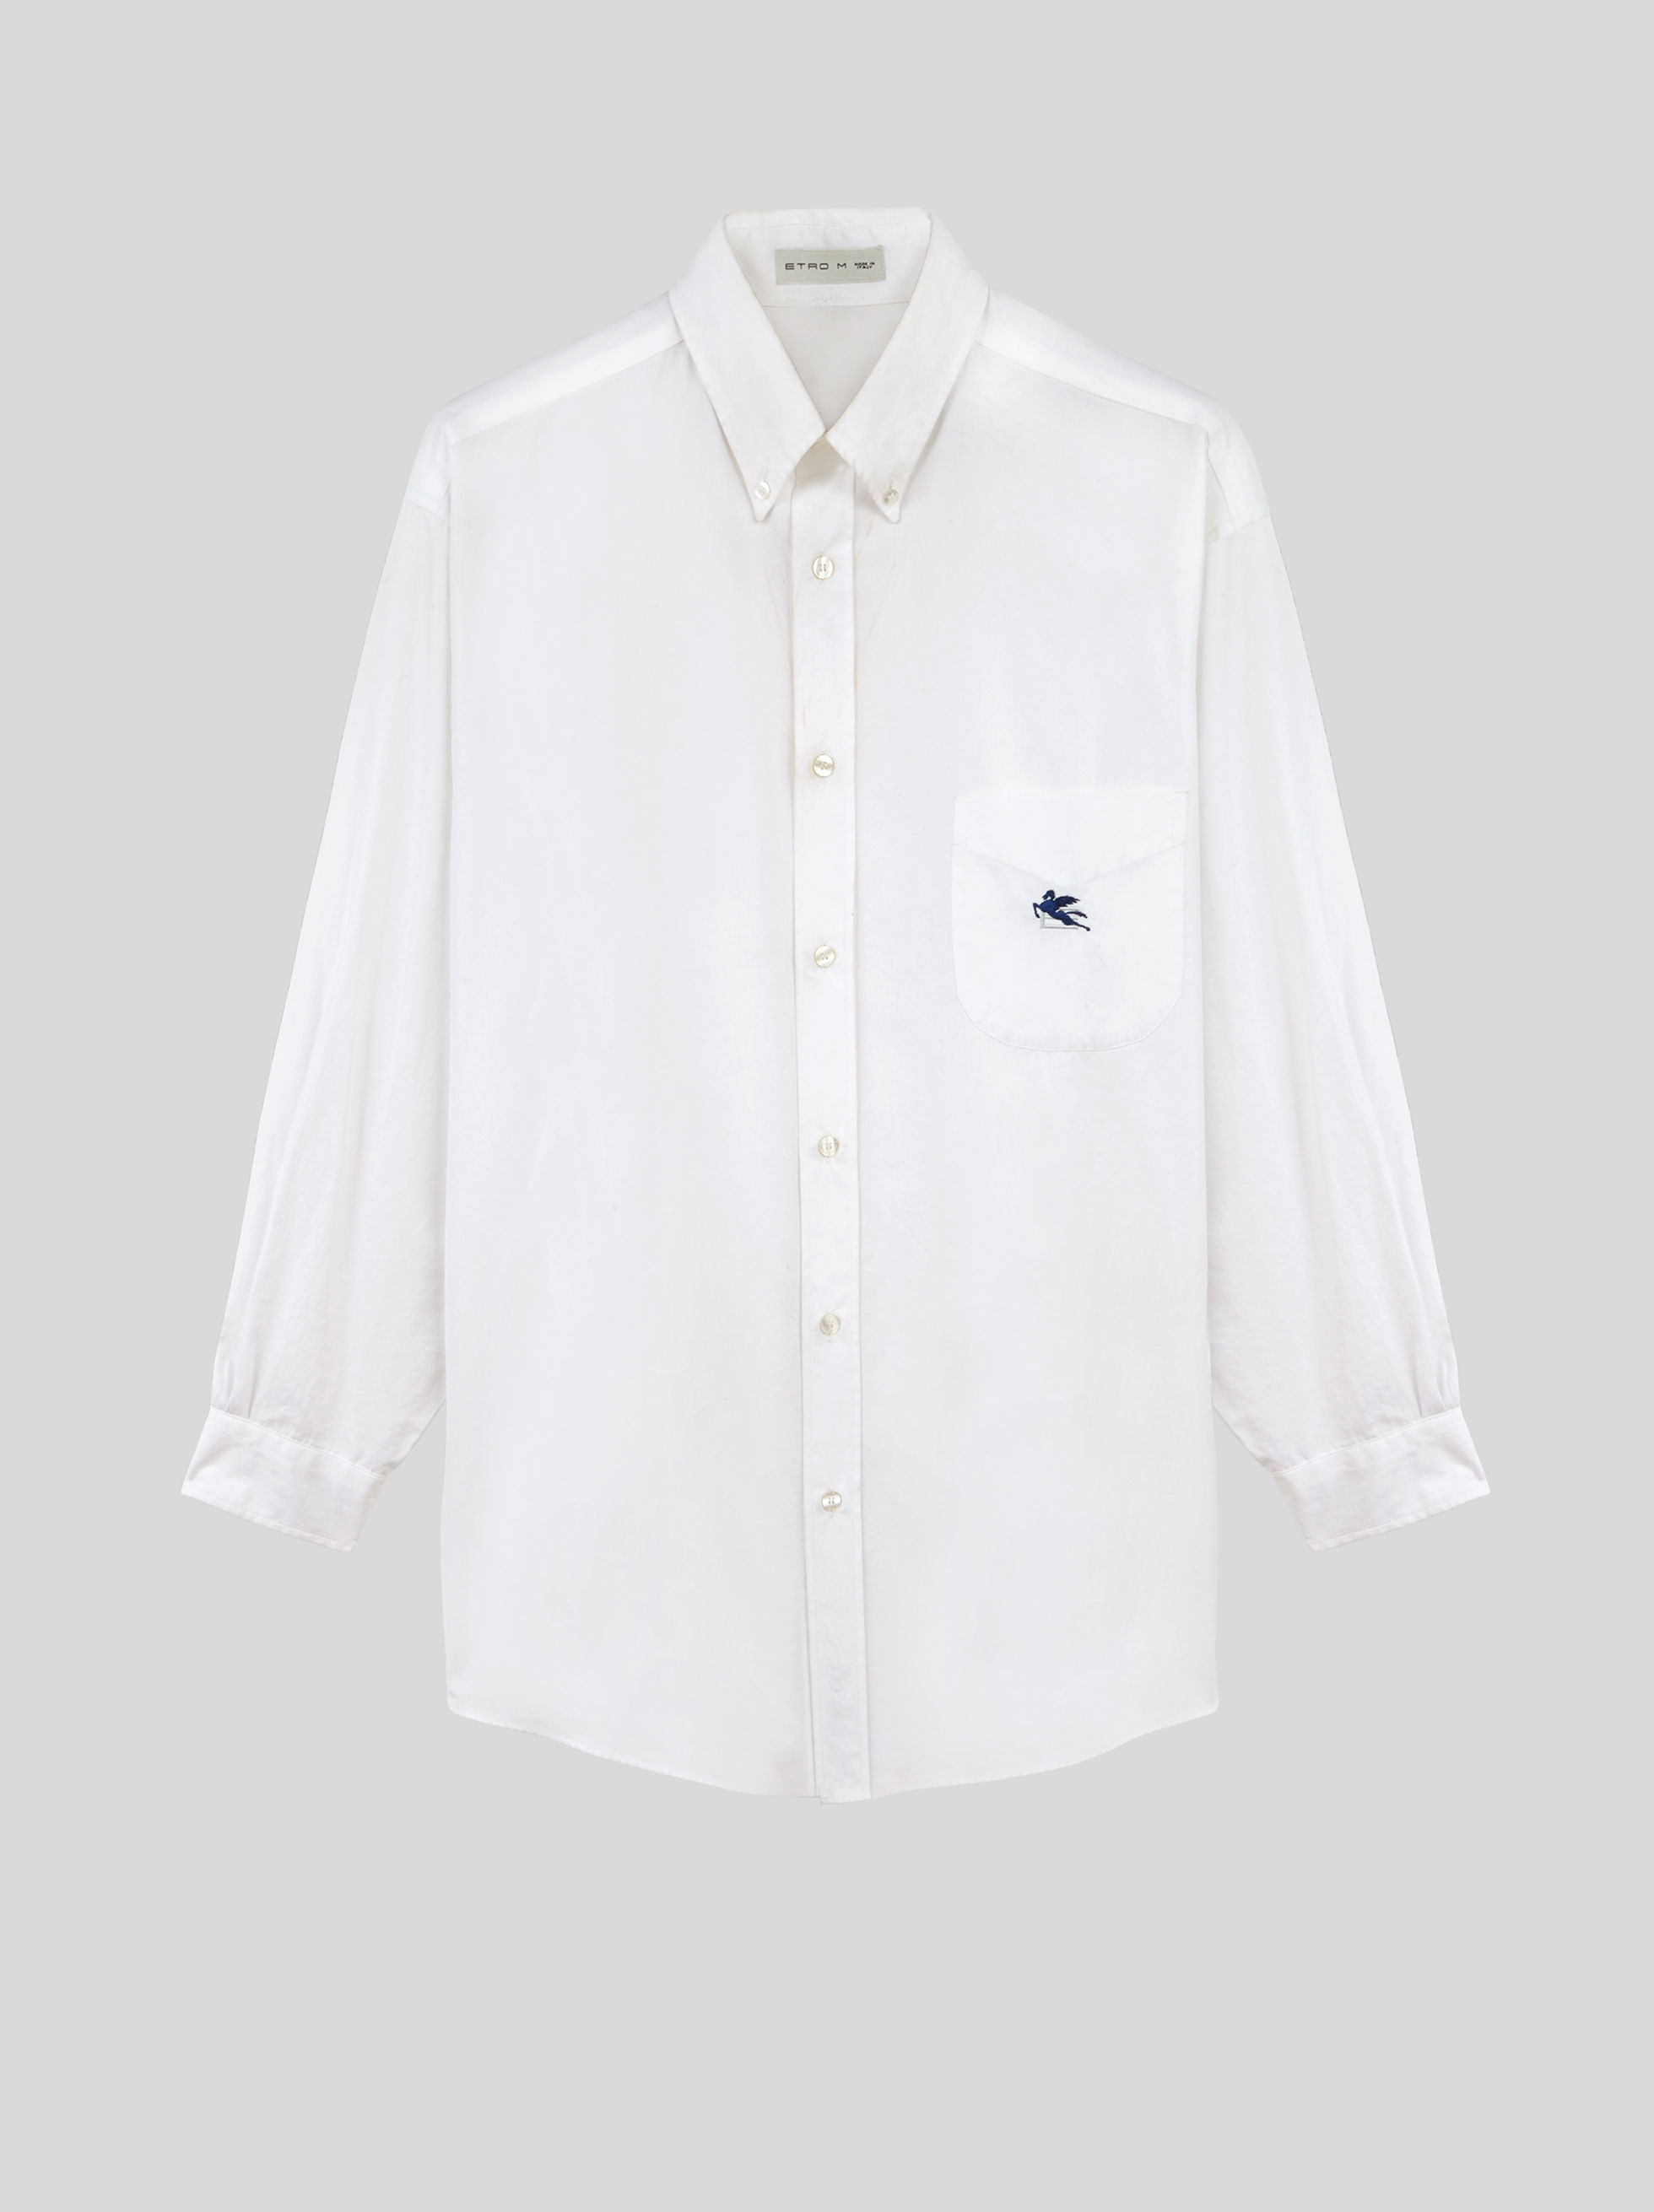 GE01 SHIRT WITH EMBROIDERED PEGASO